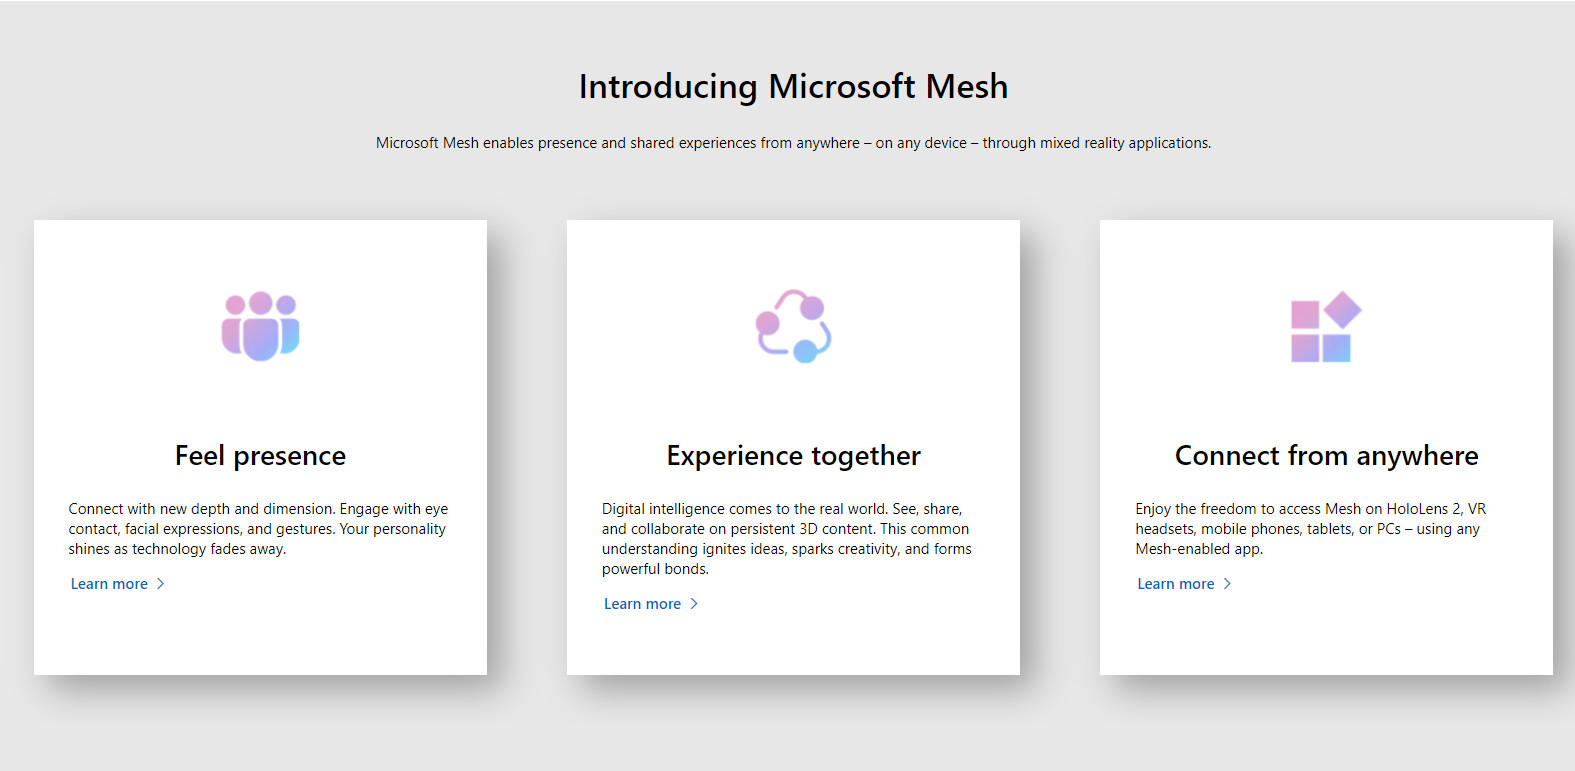 Microsoft Mesh - Feel presence connect from anywhere and experience together